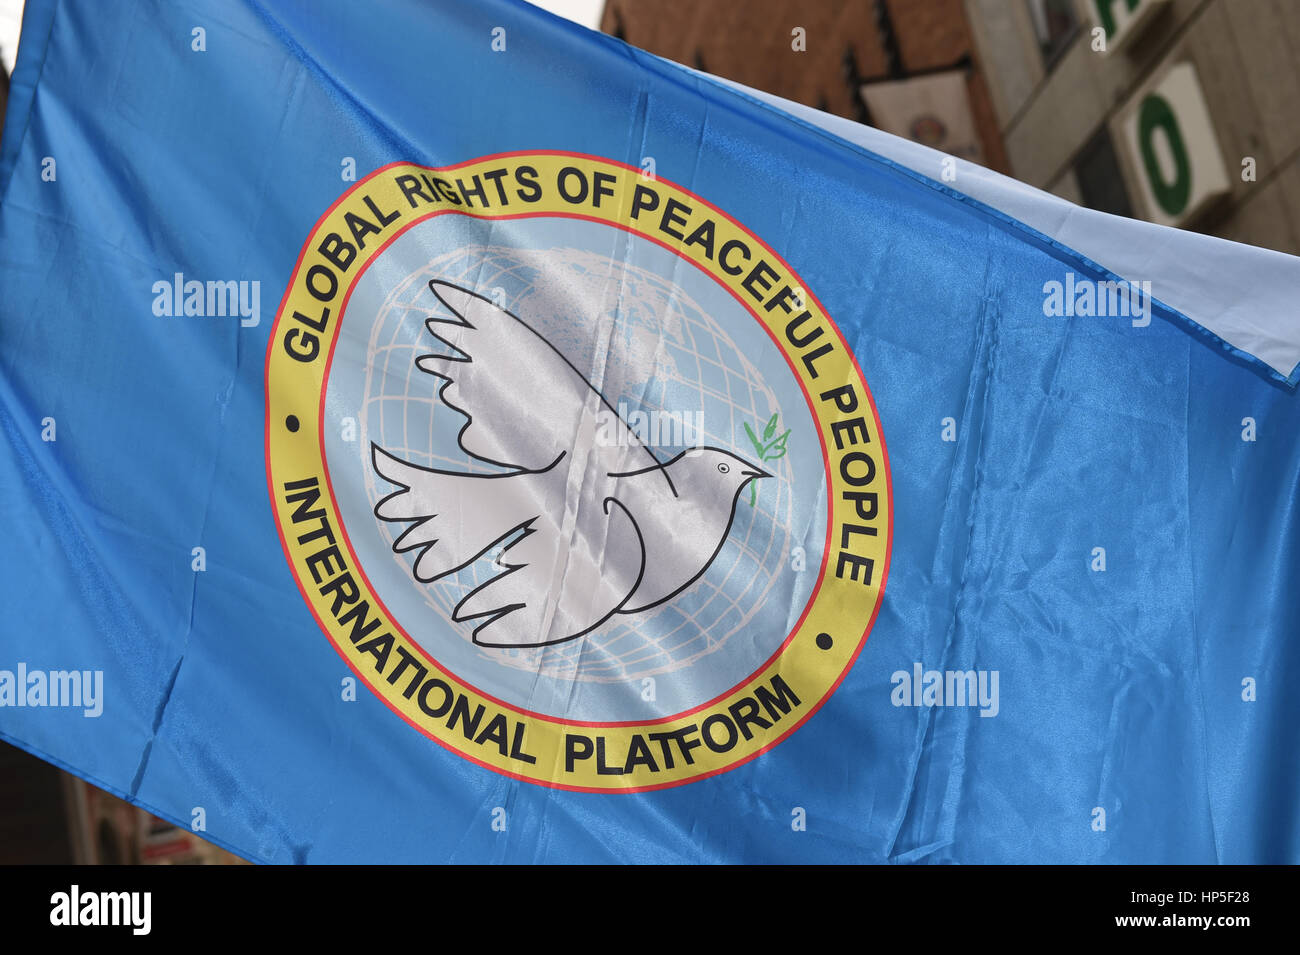 """Munich, Germany. 18th Feb, 2017. A flag with the letters """"Global Rights of Peaceful People - International Platform"""" Stock Photo"""